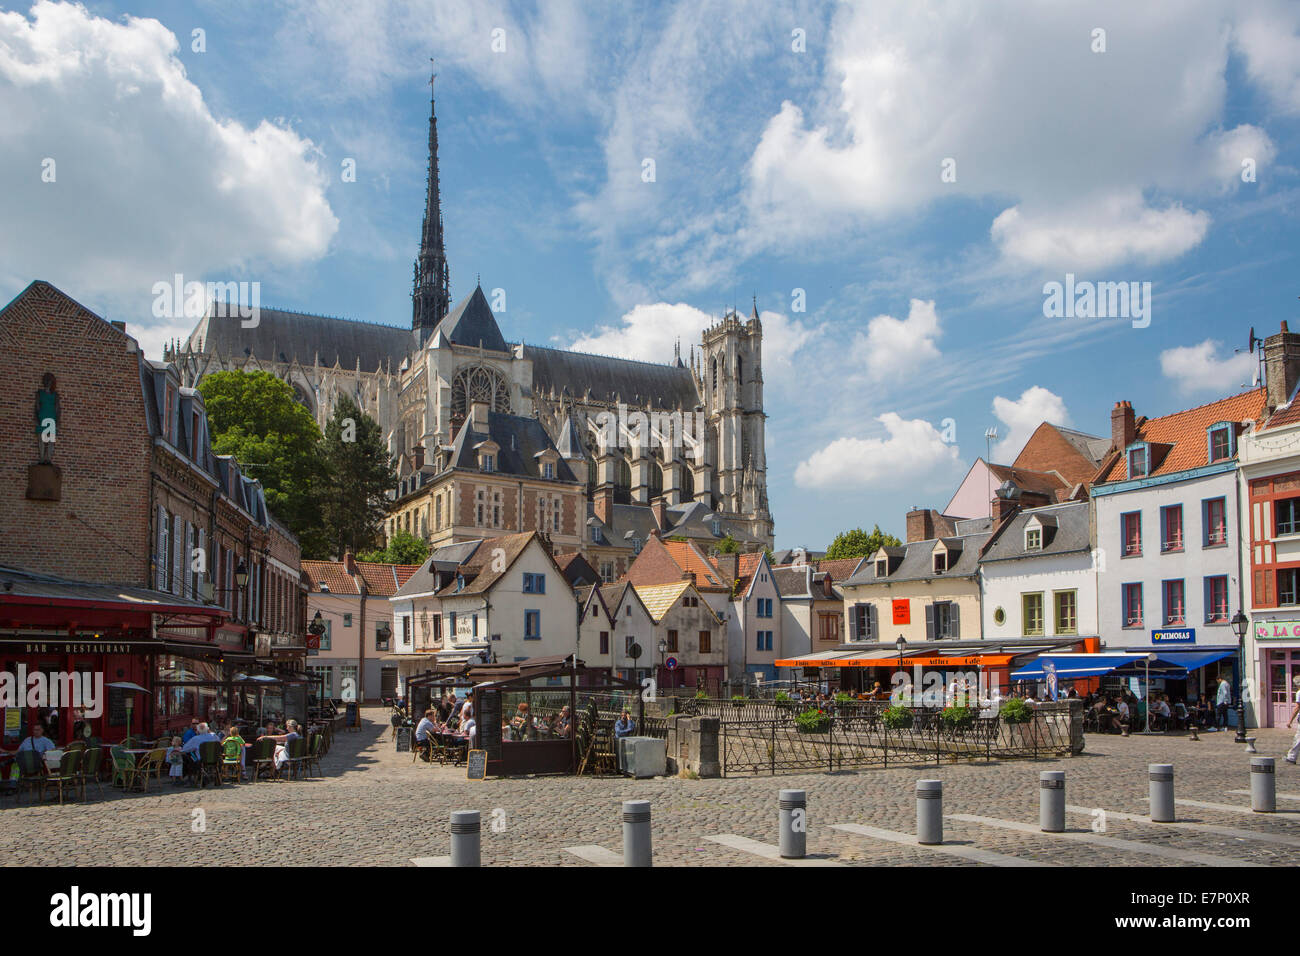 world heritage, Amiens, France, Europe, architecture, cathedral, city, history, out doors, restaurant, place, terrace, - Stock Image